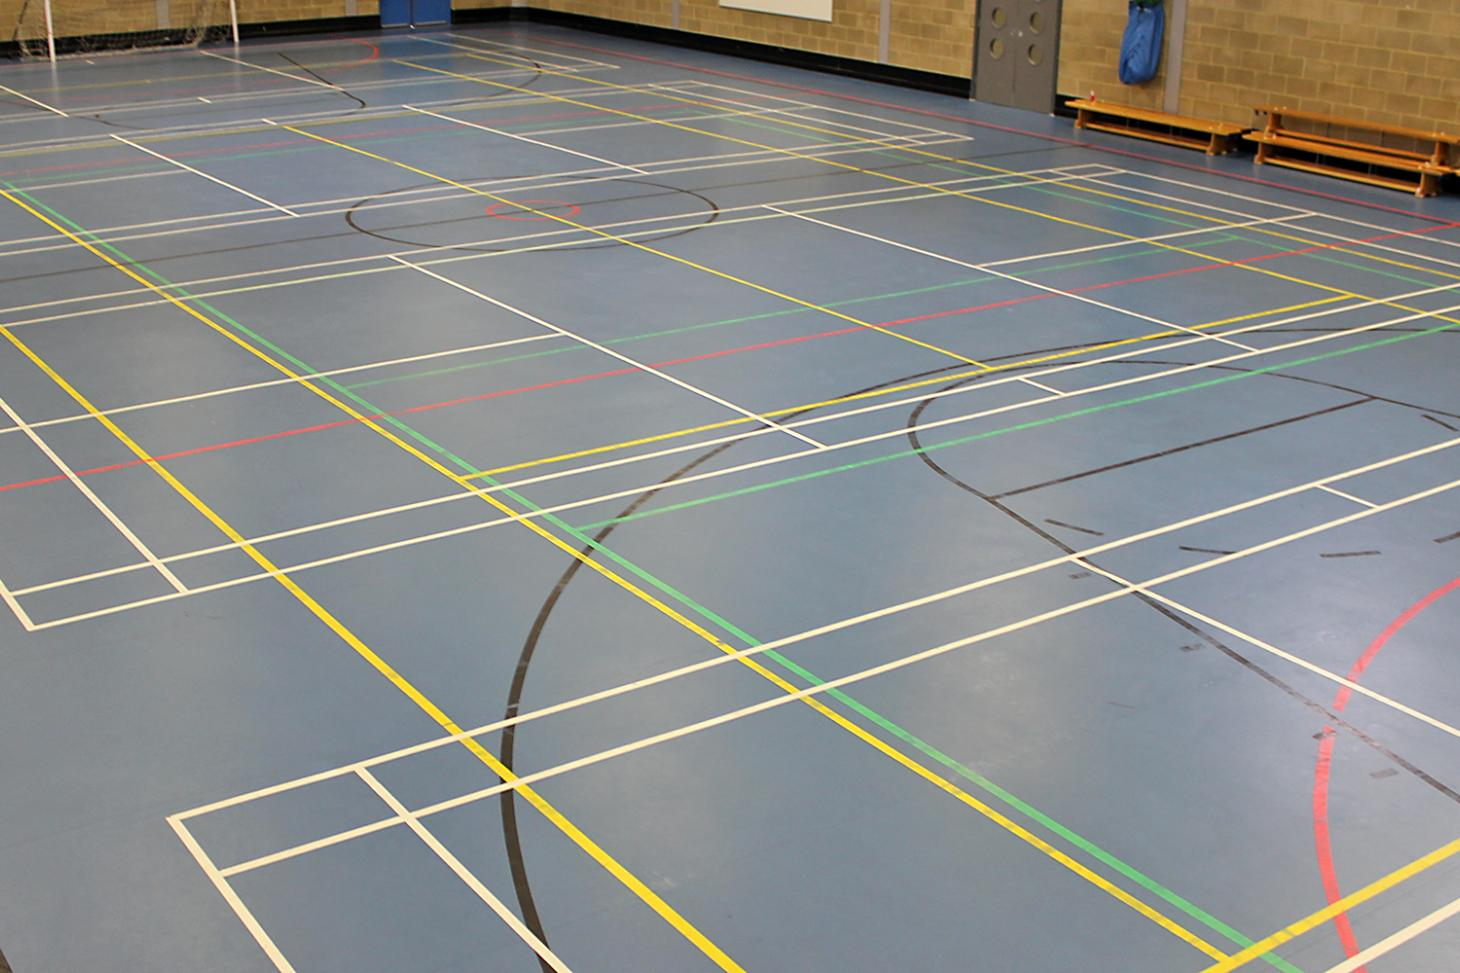 Harris Academy Purley Indoor netball court